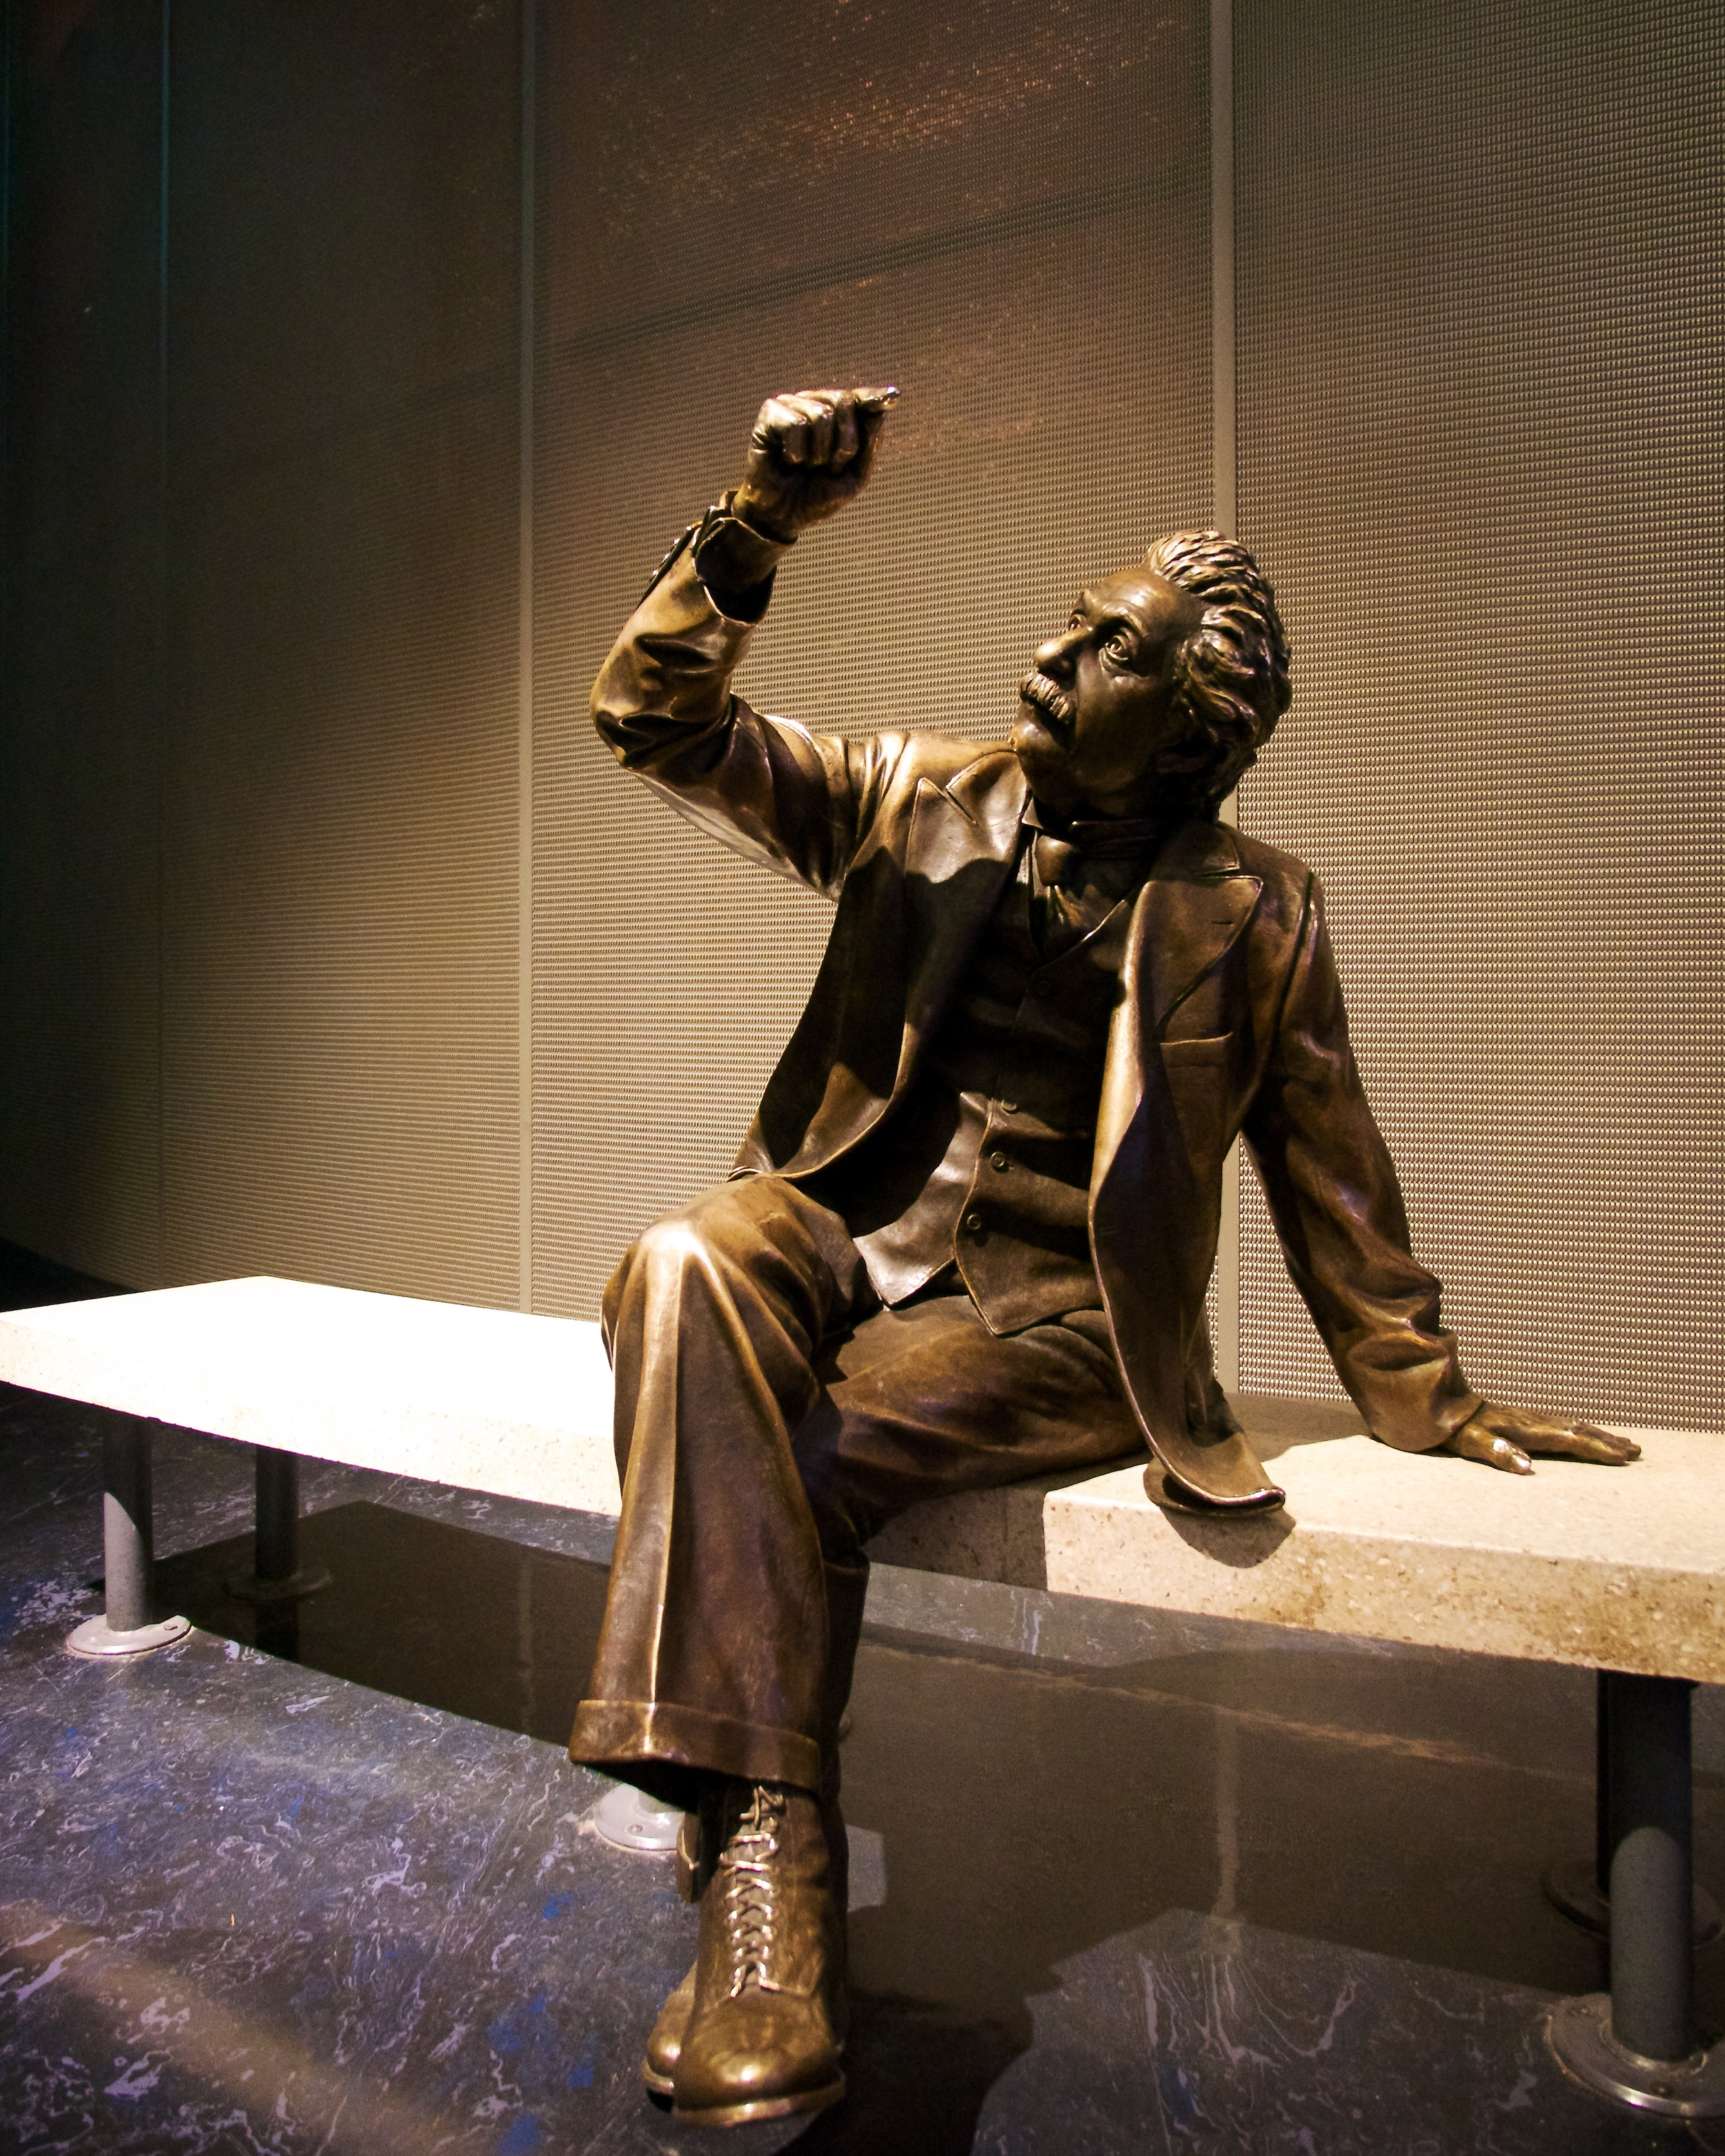 This statue of Albert Einstein demonstrates how many stars are represented in The Big Picture